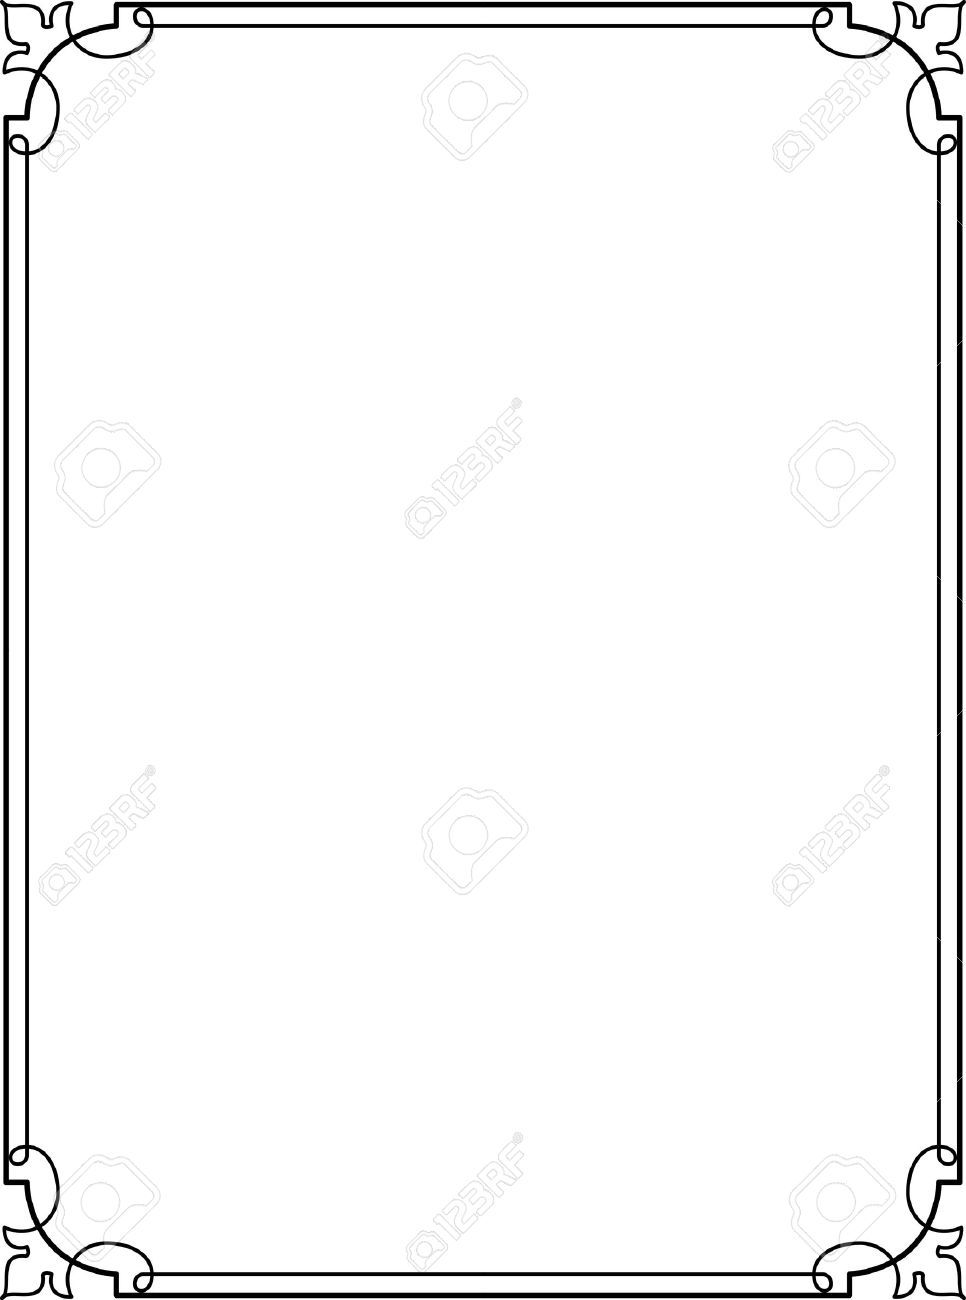 Simple Lines Border Frame Vector Design Page Borders Design Page Borders Graphic Design Tutorials Photoshop